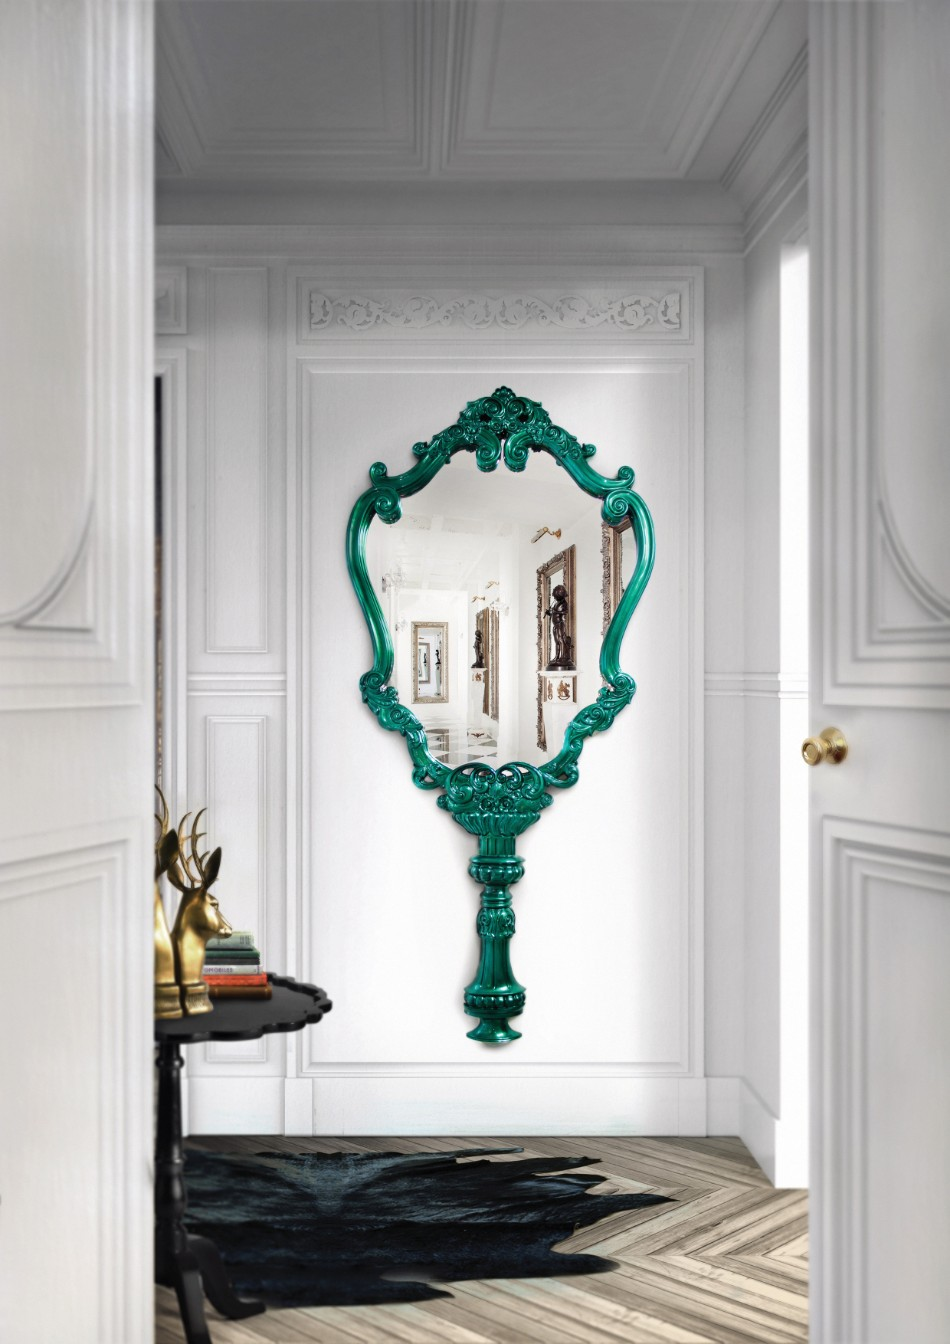 marie-therese-mirror-limited-edition-boca-do-lobo-00 Portugal Fashion Portugal Fashion: Boca do Lobo will tell you an exclusive story marie therese mirror limited edition boca do lobo 00